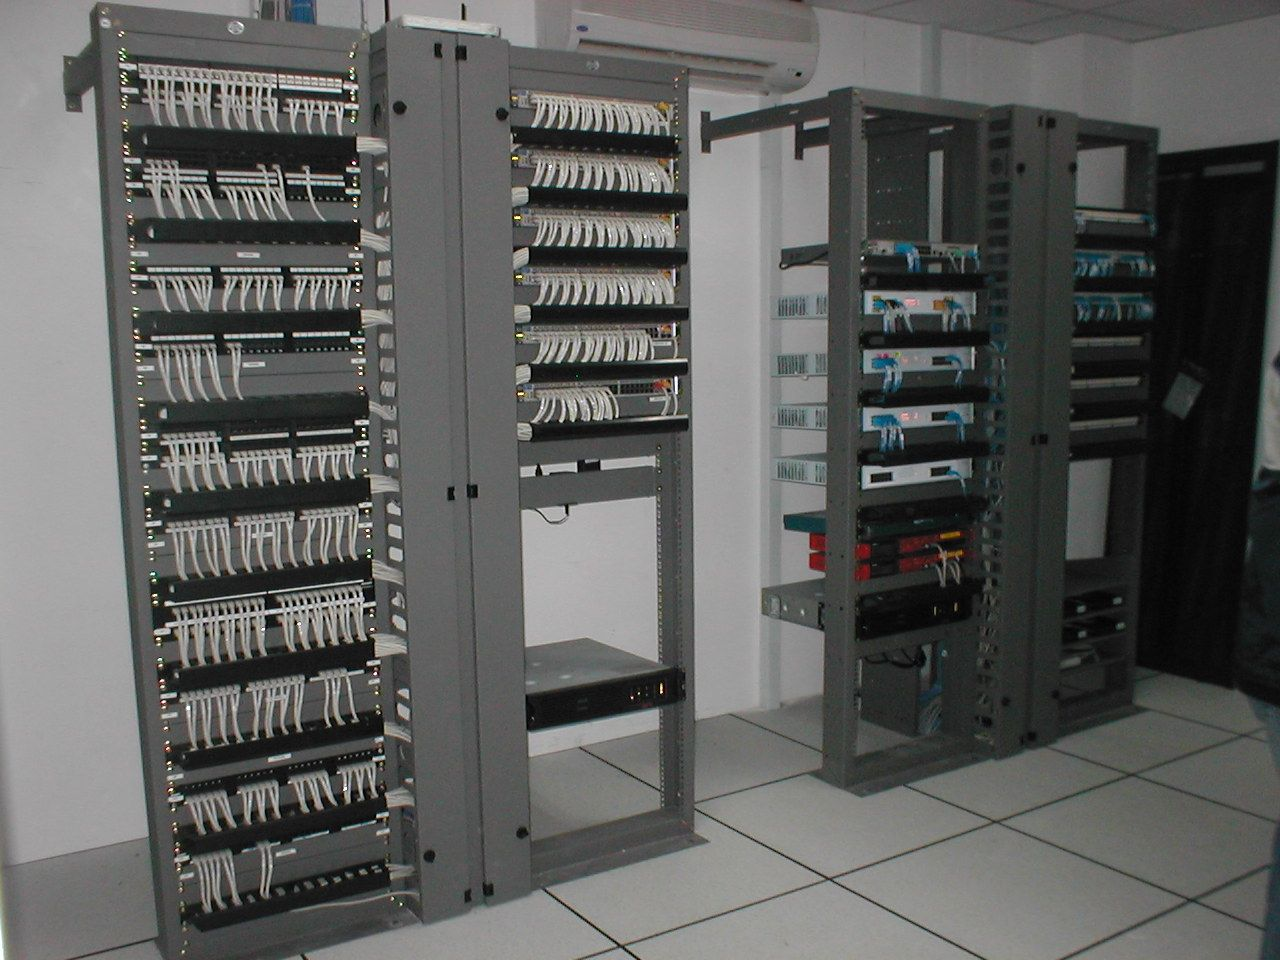 rack patch panel and switched separated [ 1280 x 960 Pixel ]